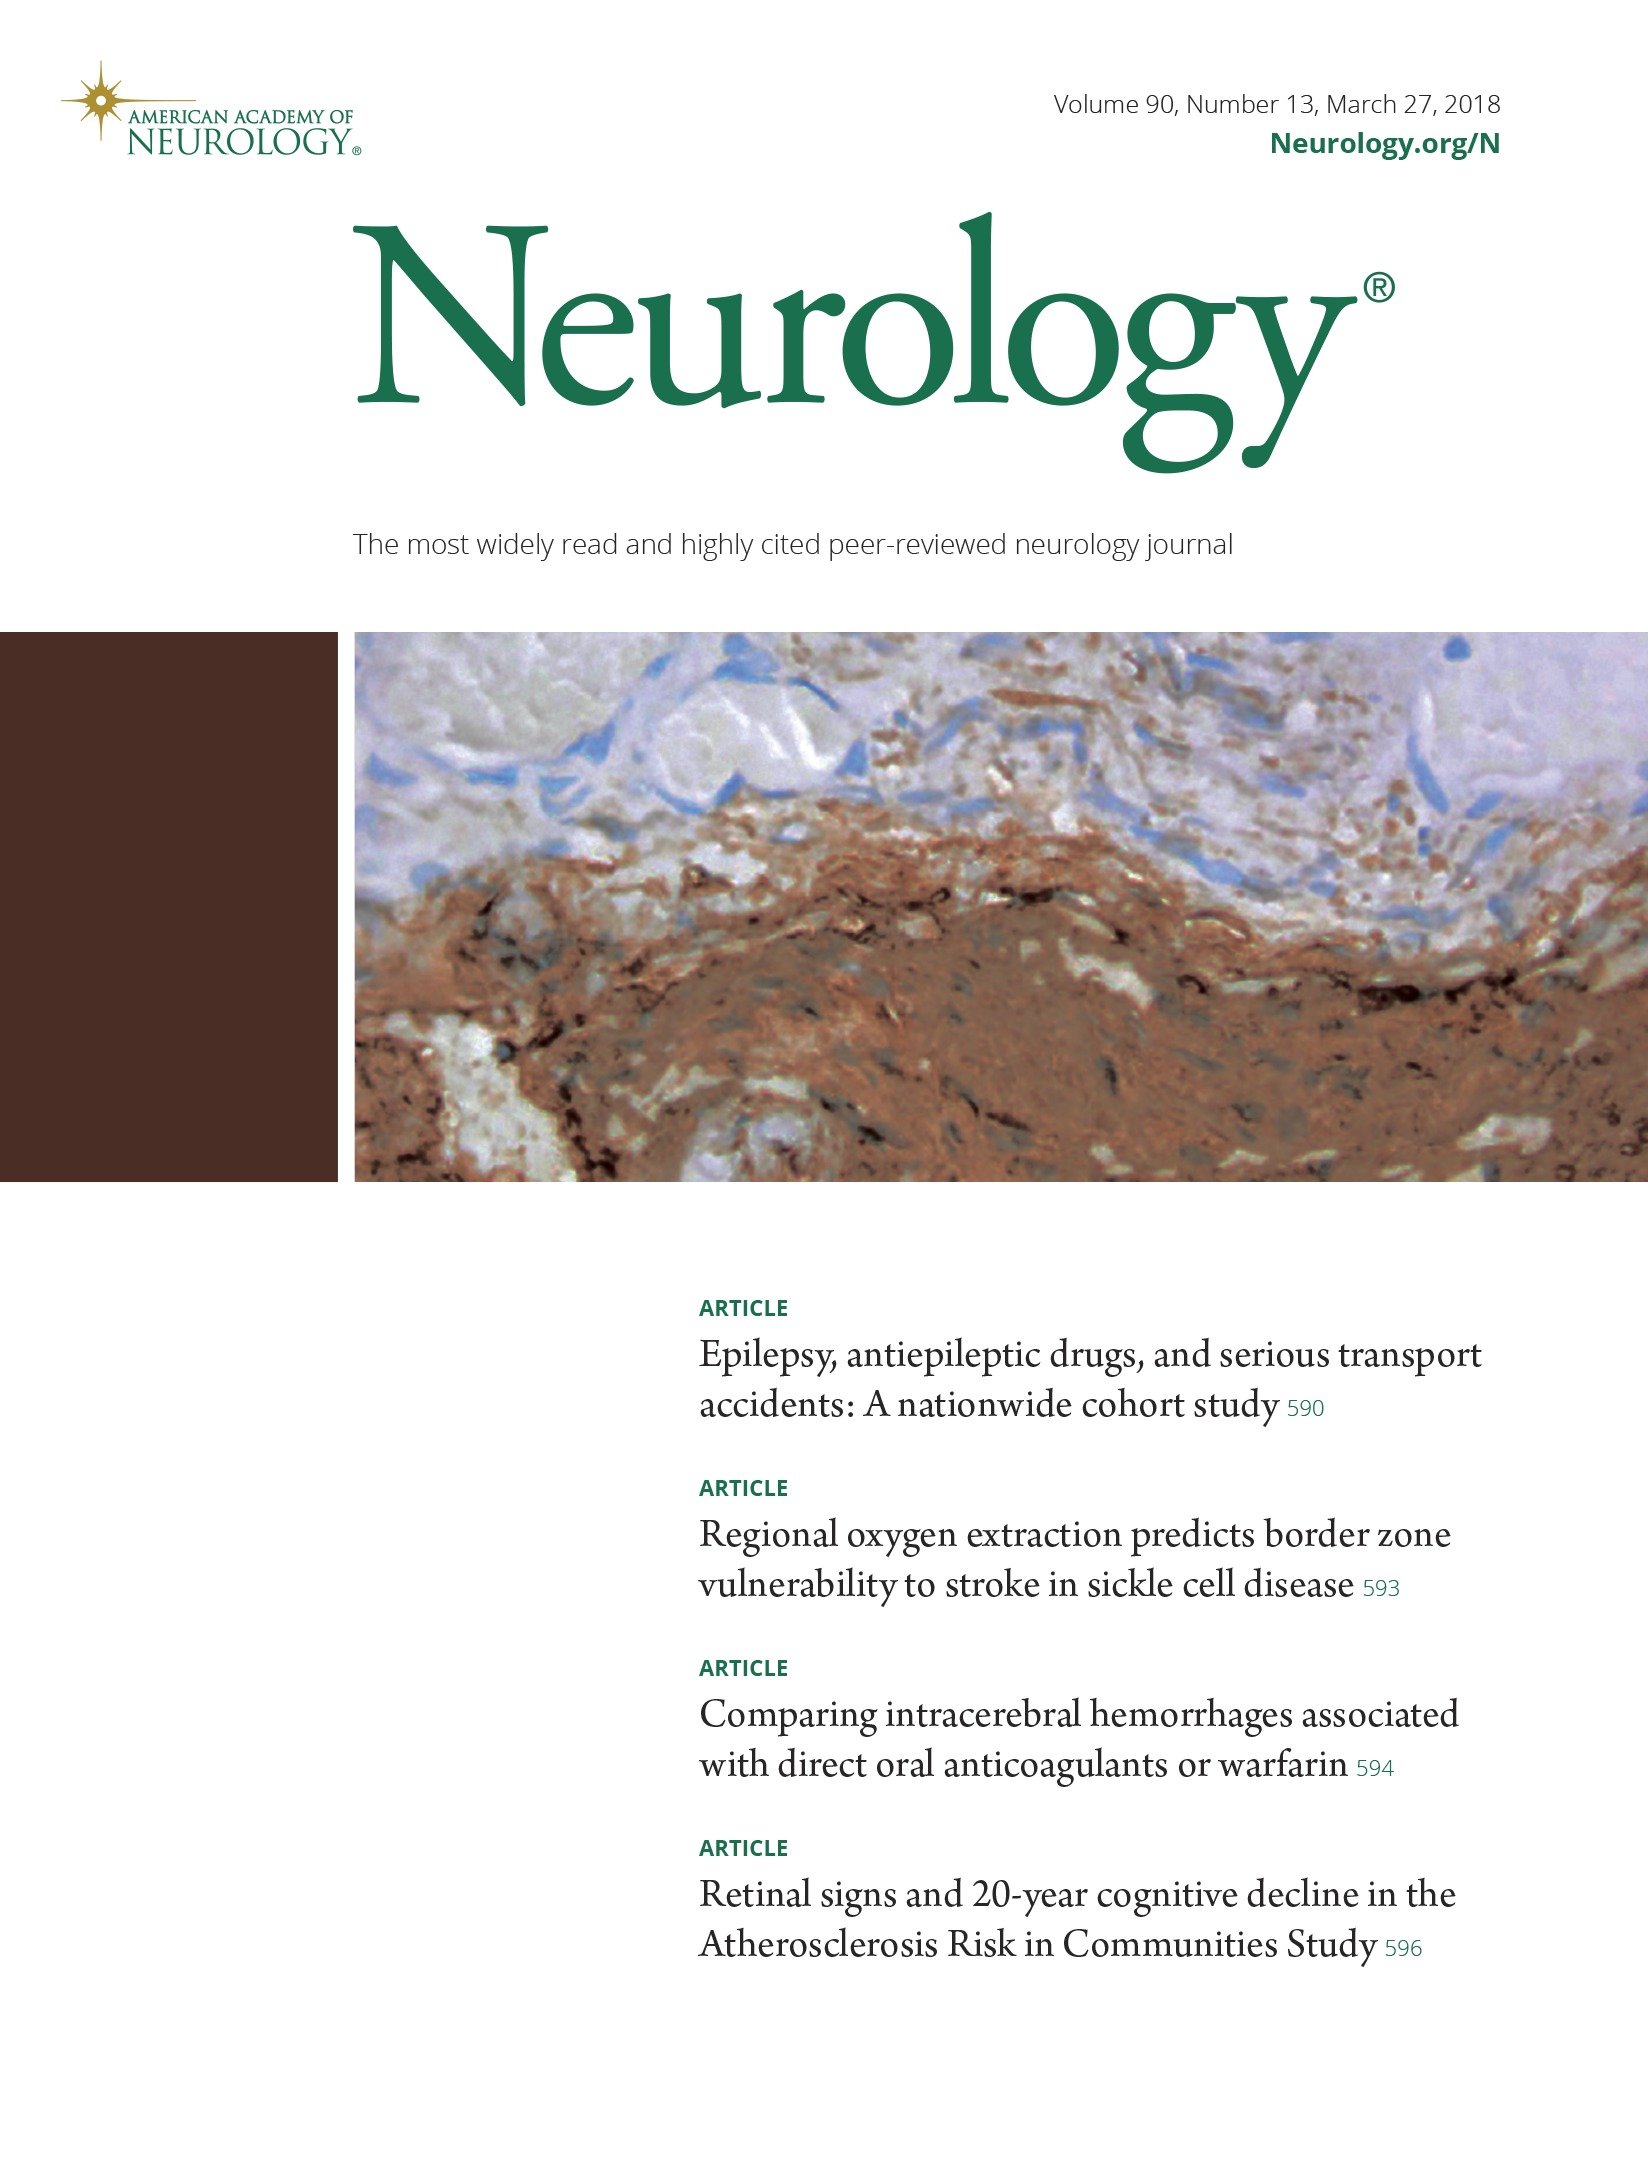 Comparing intracerebral hemorrhages associated with direct